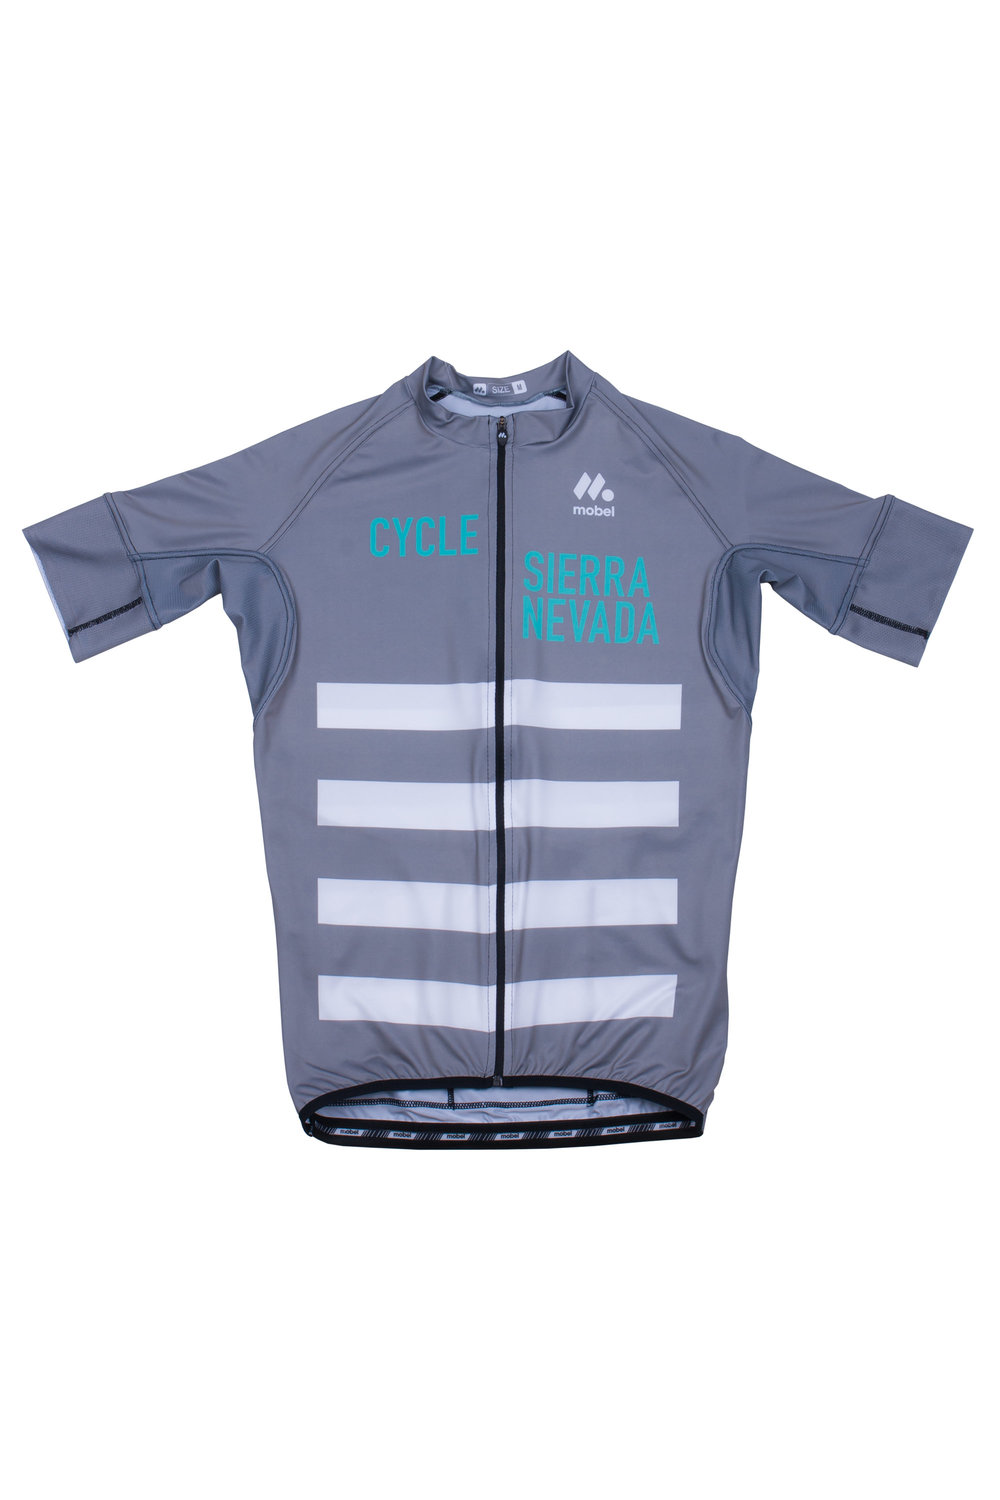 CHECK OUT OUR NEW KIT Order the full Cycle Sierra Nevada kit online today